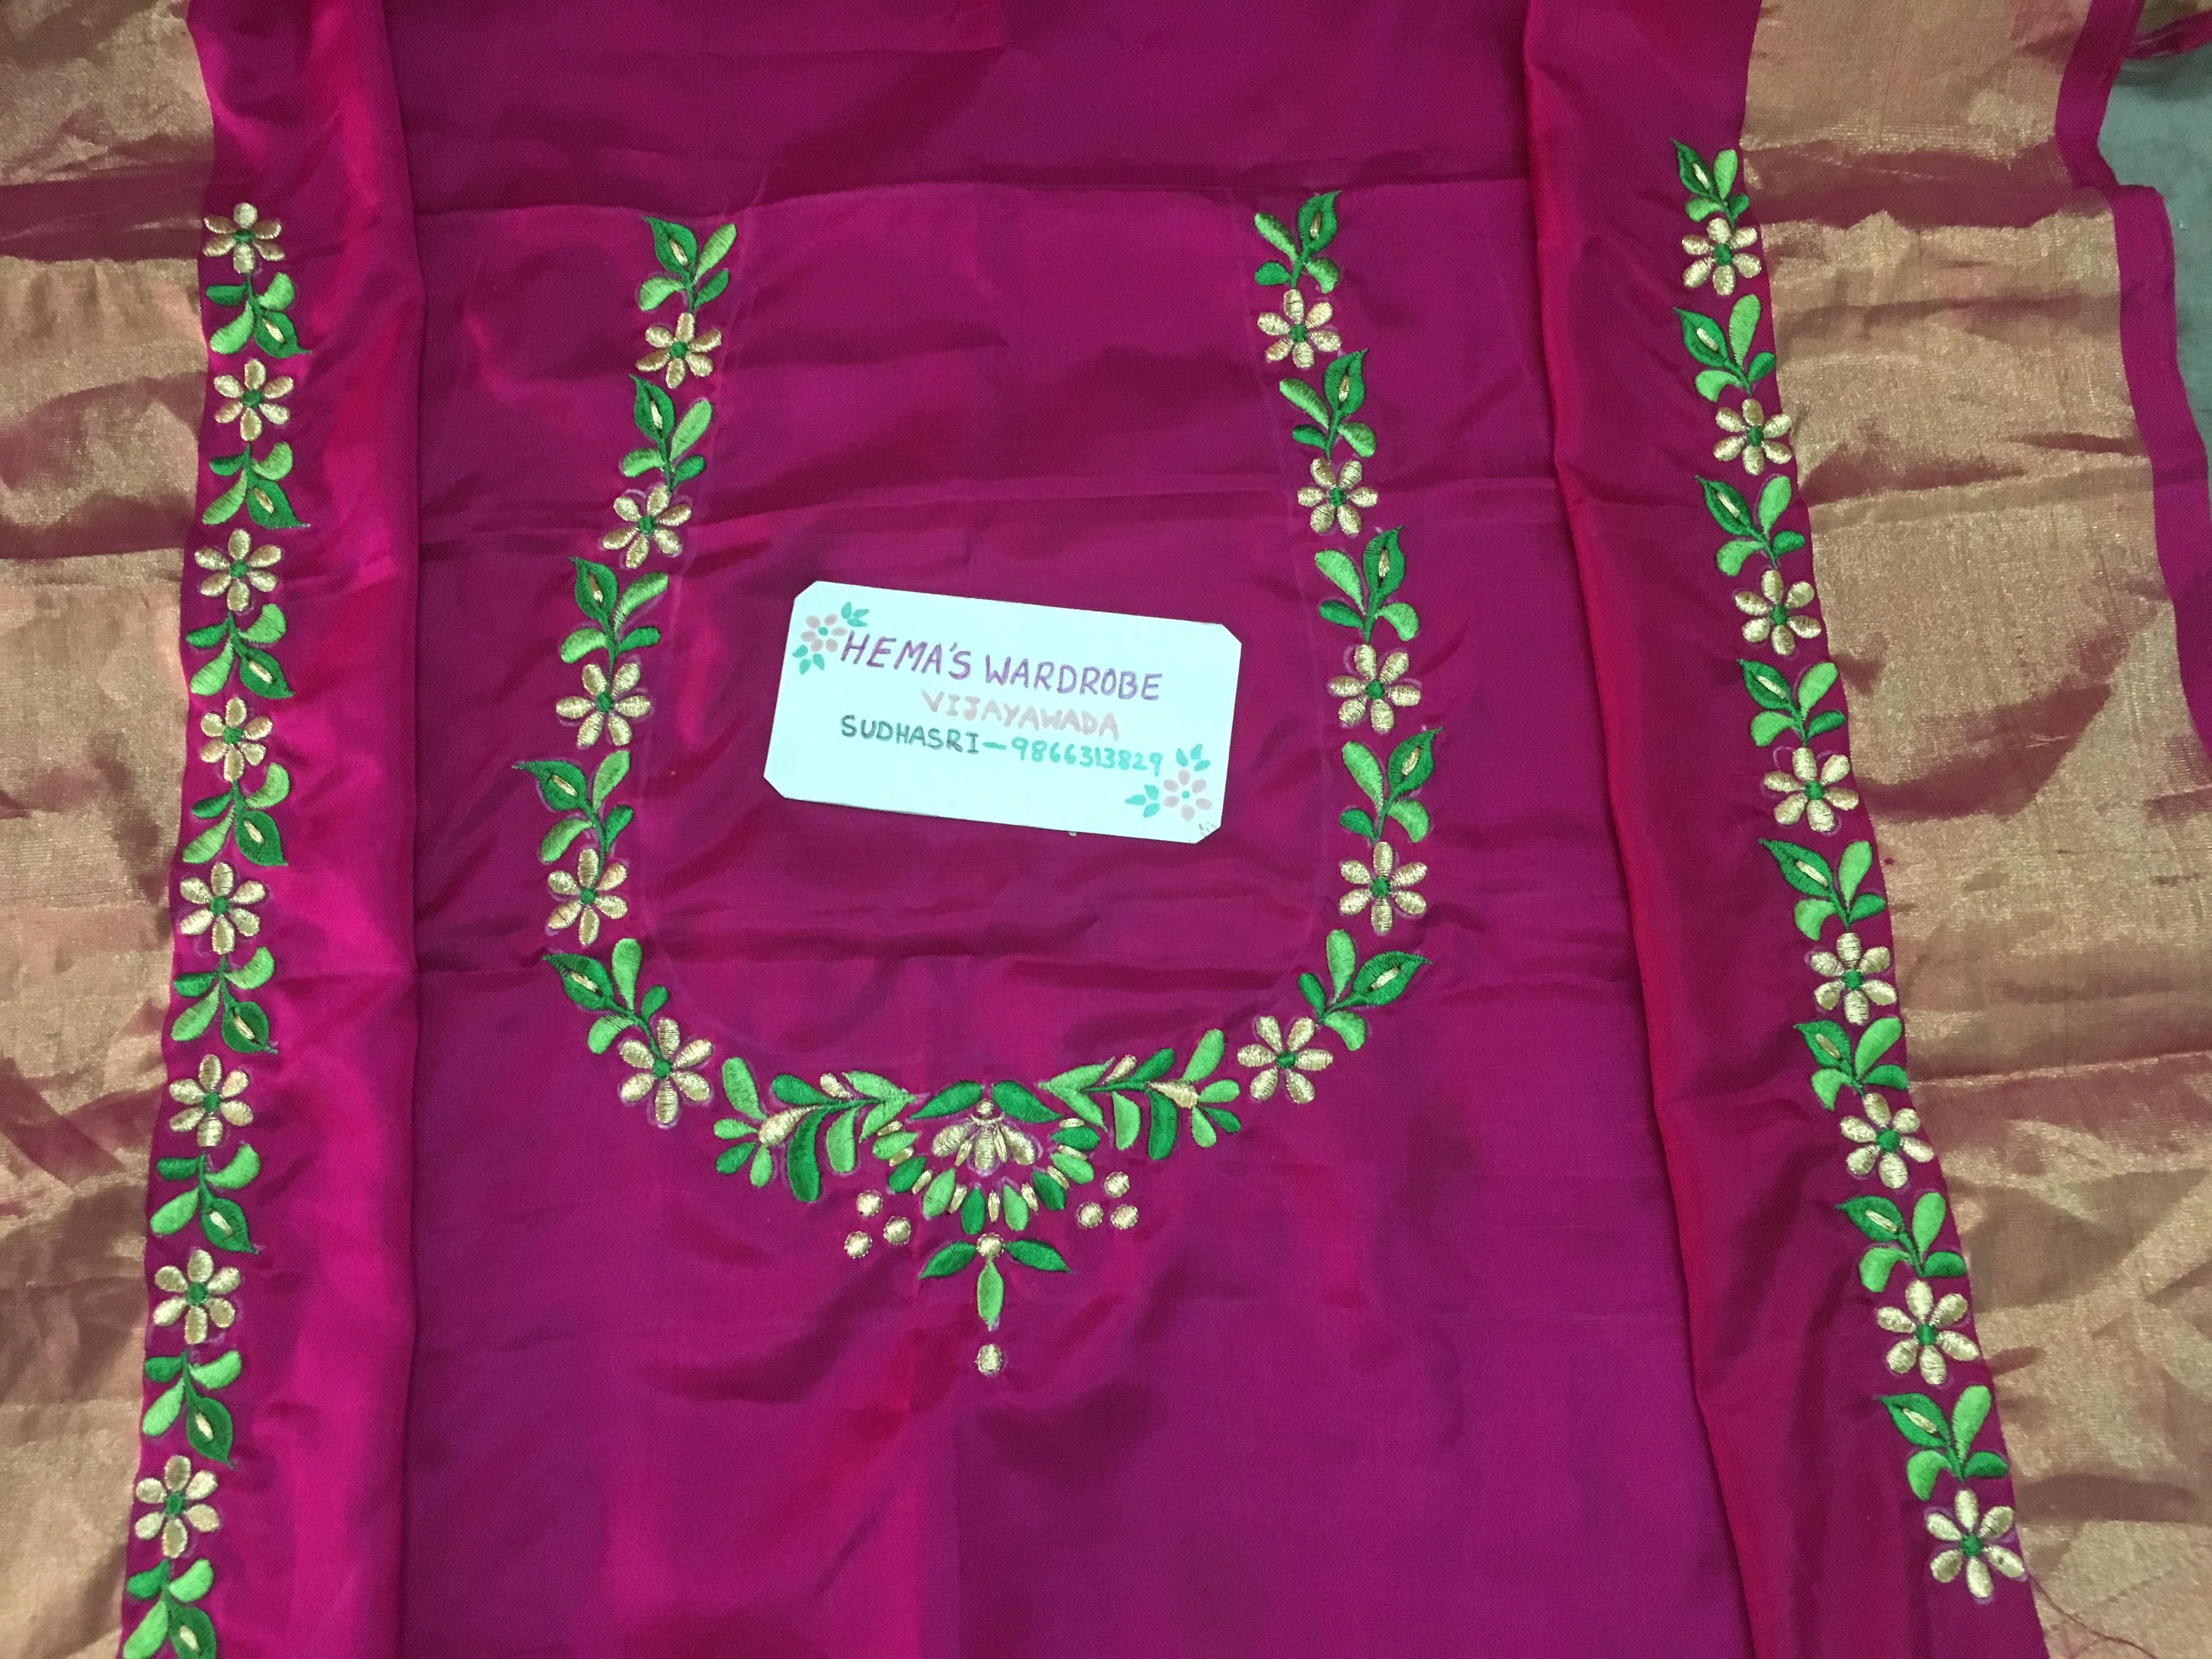 My Design Sudhasri Embroidery Blouse Designs Simple Blouse Designs Embroidered Blouse Designs,Design Your Own Phone Case Template